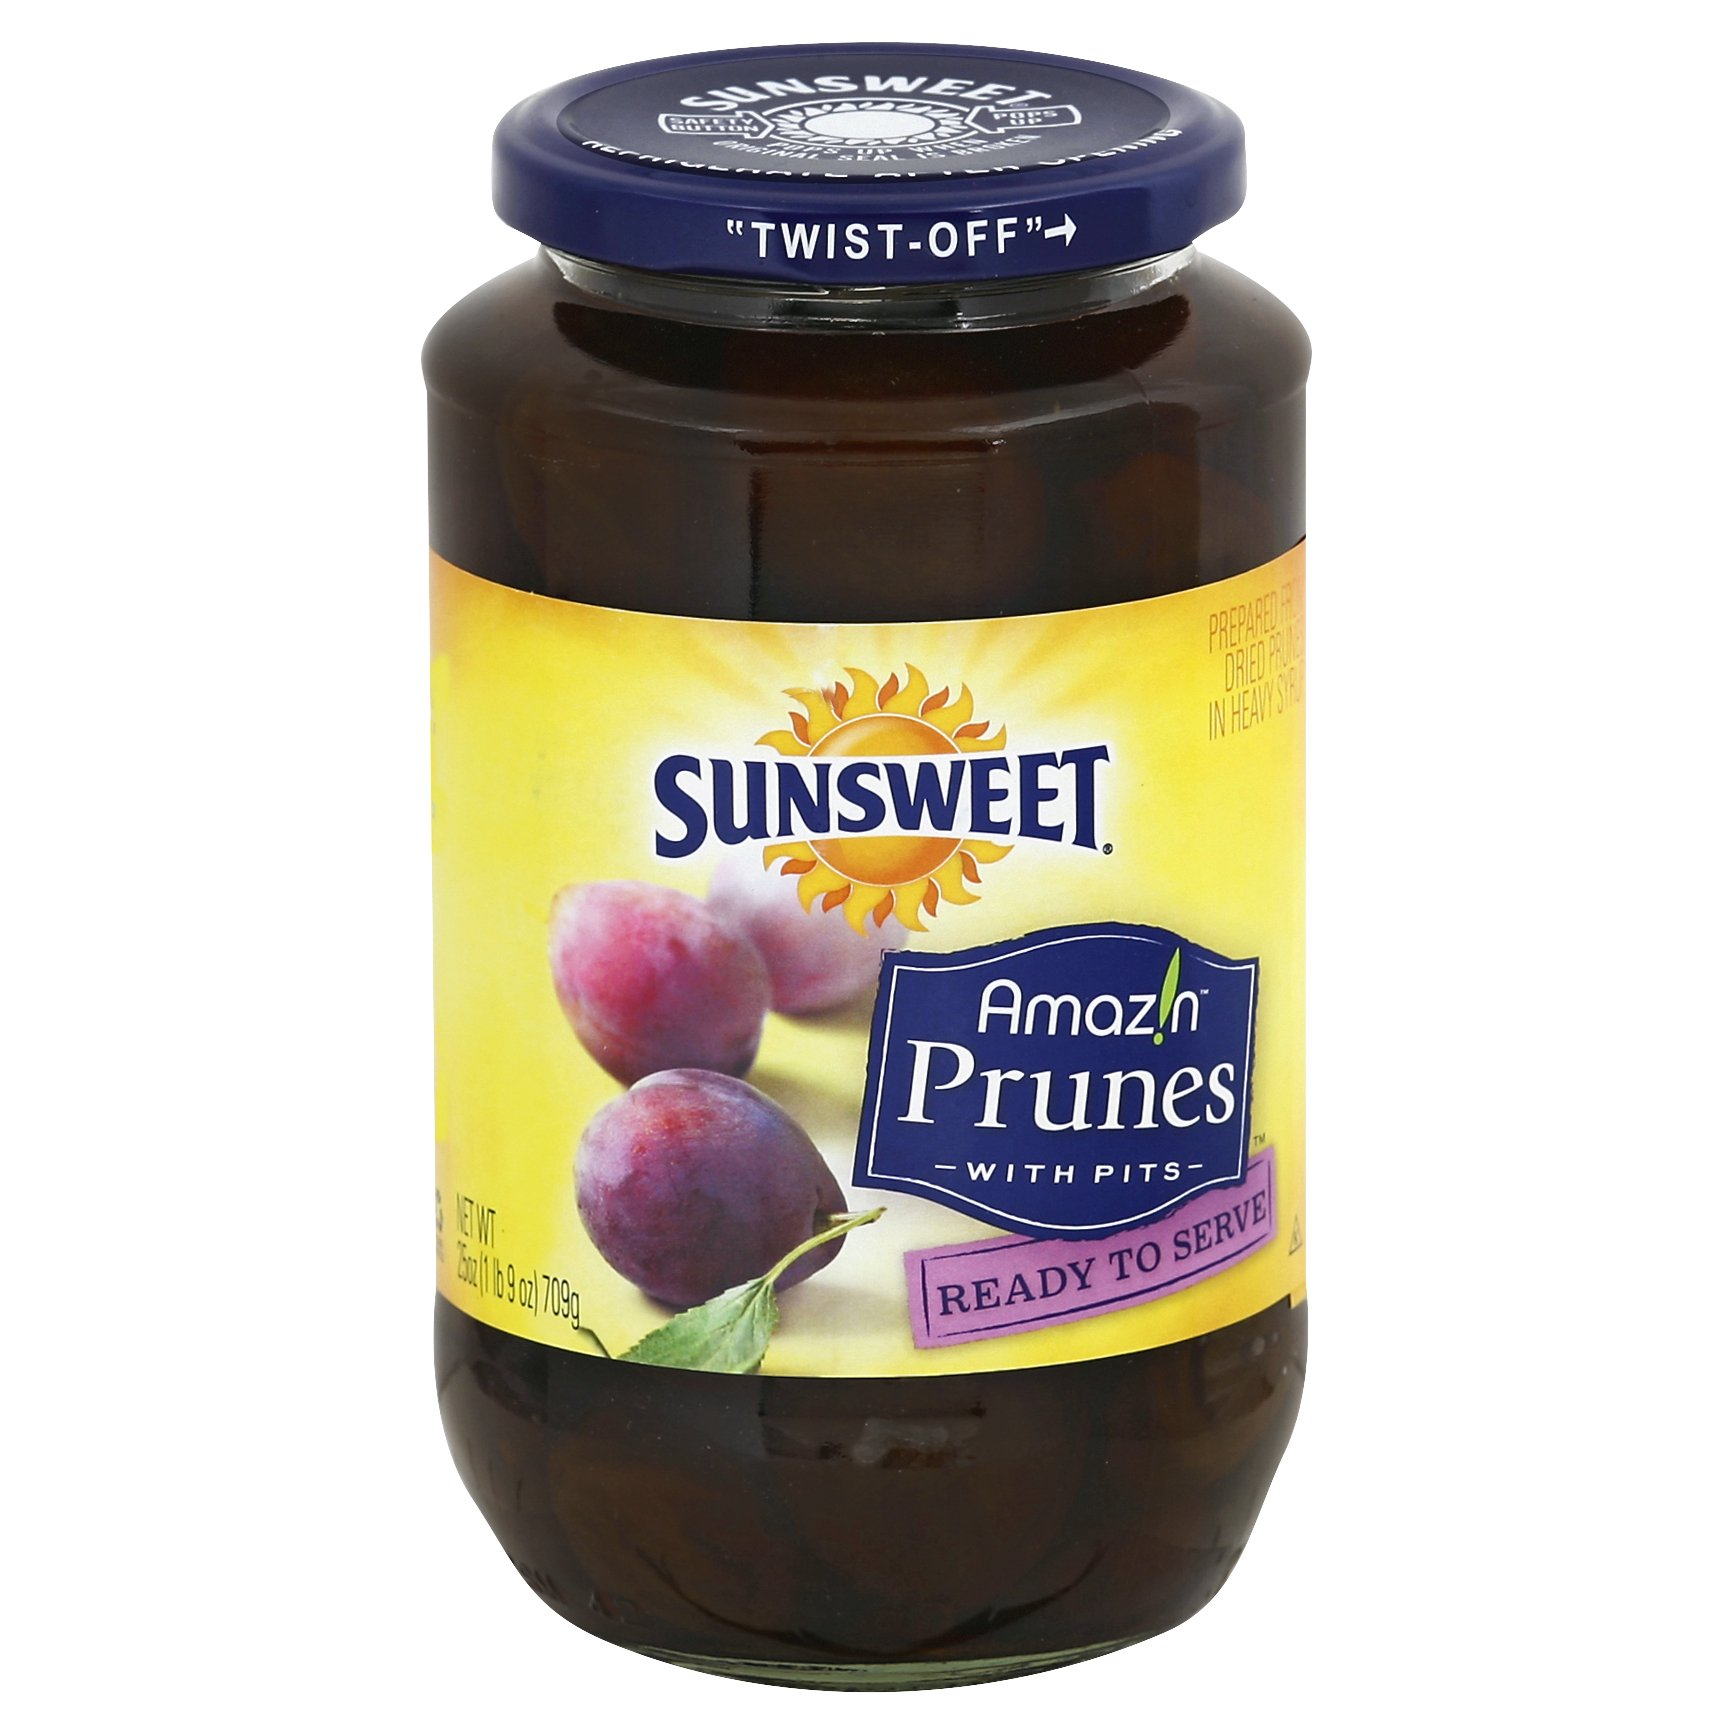 Sunsweet Amazin Prunes with Pits 25OZ 12-Pack